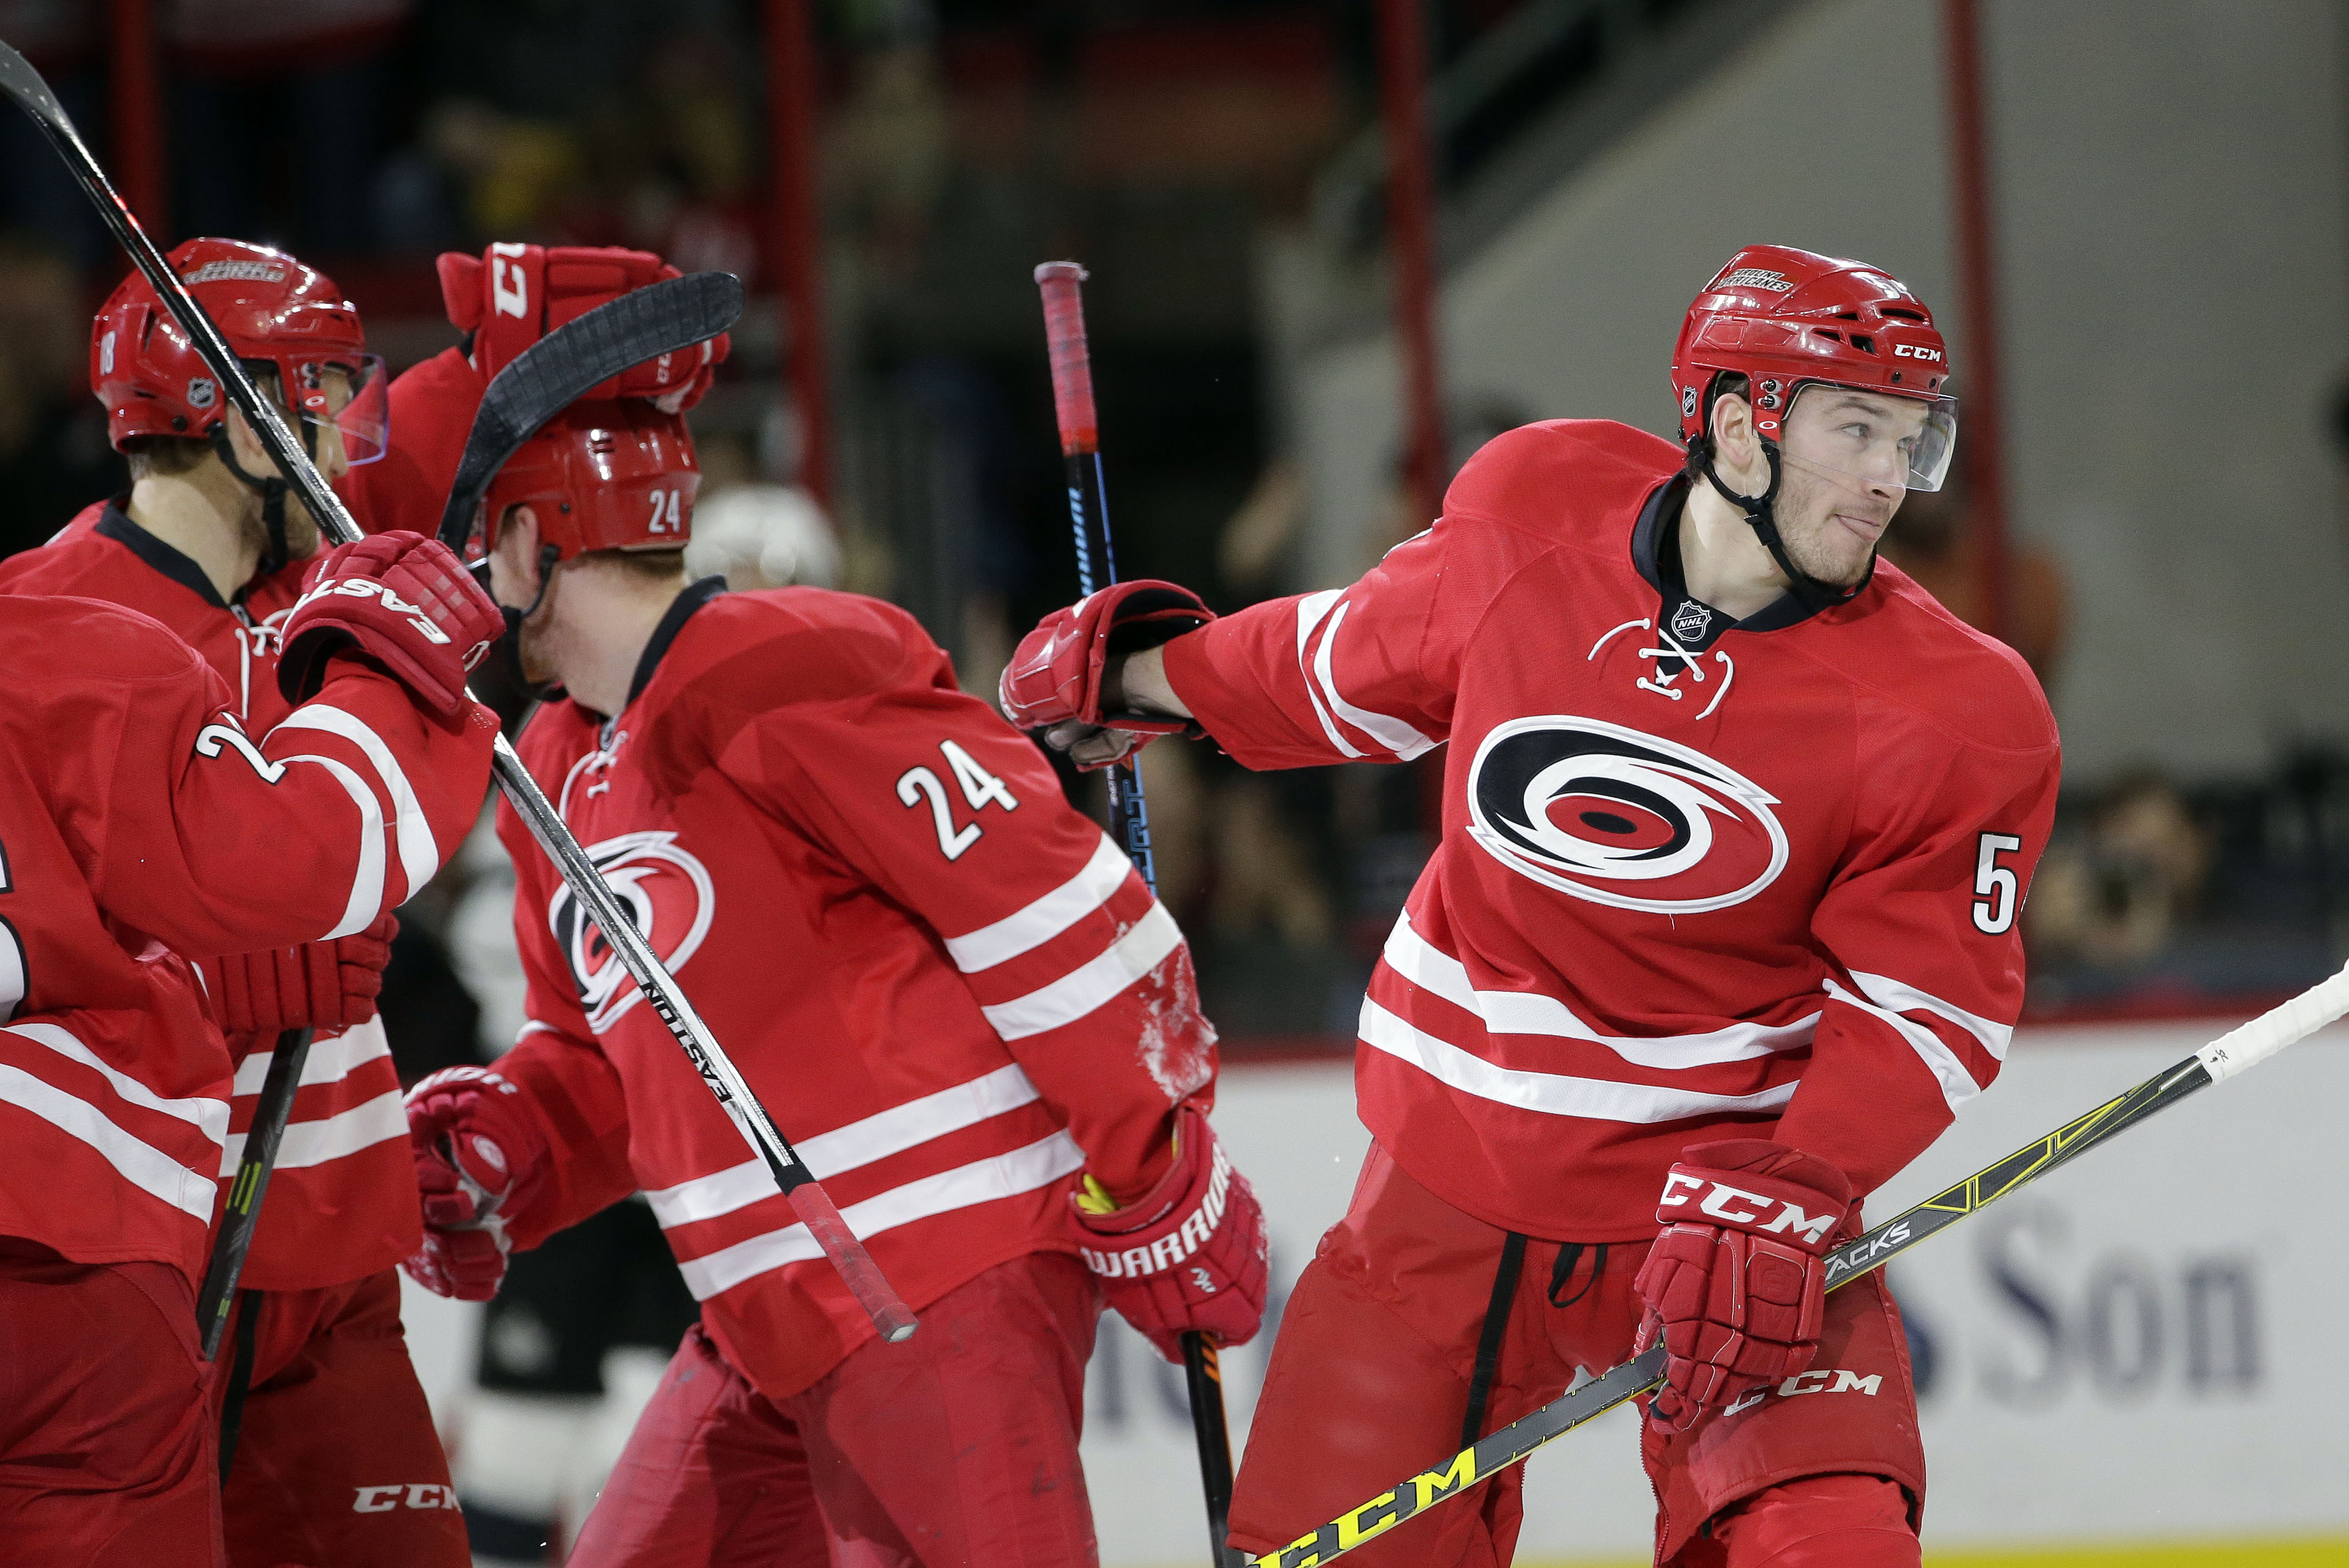 Carolina Hurricanes' Brett Pesce, right, celebrates with teammates Brad Malone (24) and Jay McClement, left, following his goal against the Los Angeles Kings during the first period of an NHL hockey game in Raleigh, N.C., Sunday, Nov. 22, 2015. (AP Photo/